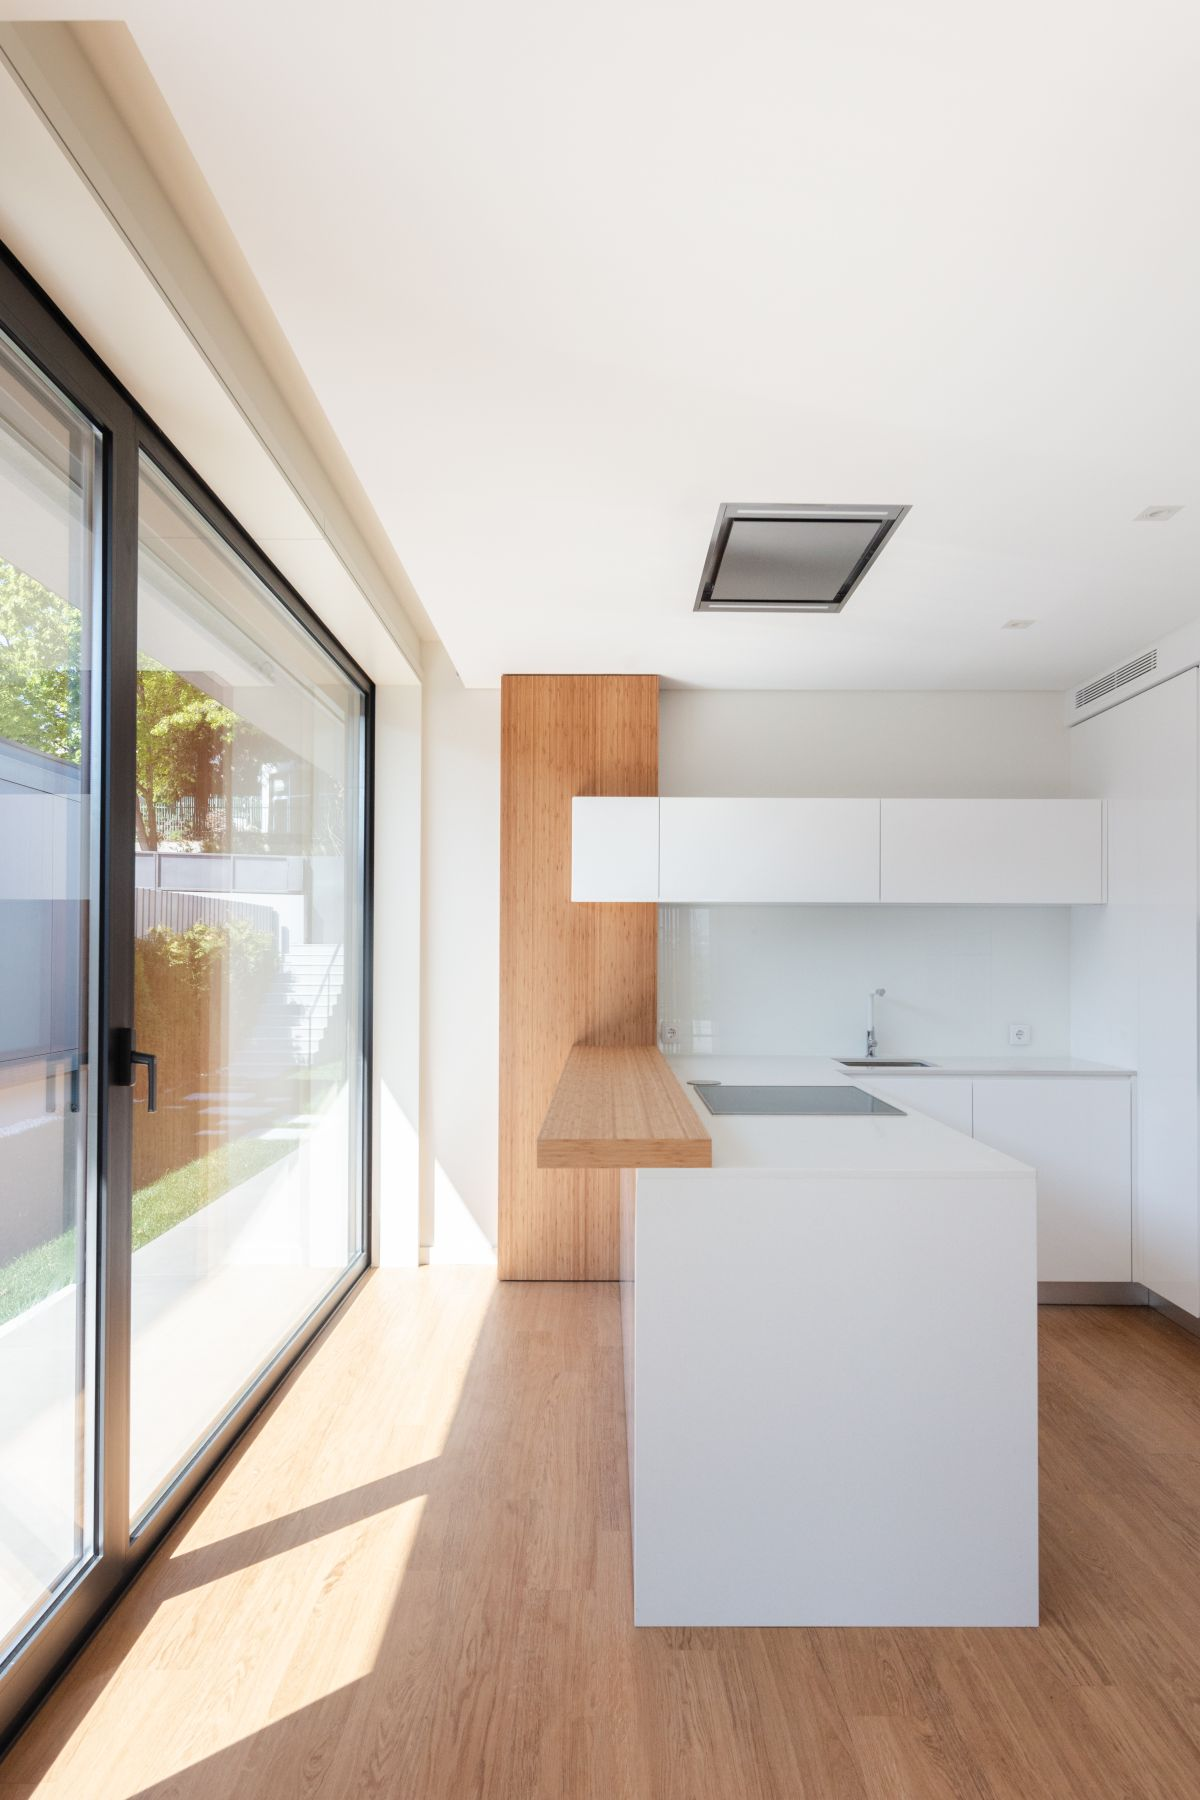 Inside, the architects chose to use a palette of neutral colors and simple materials